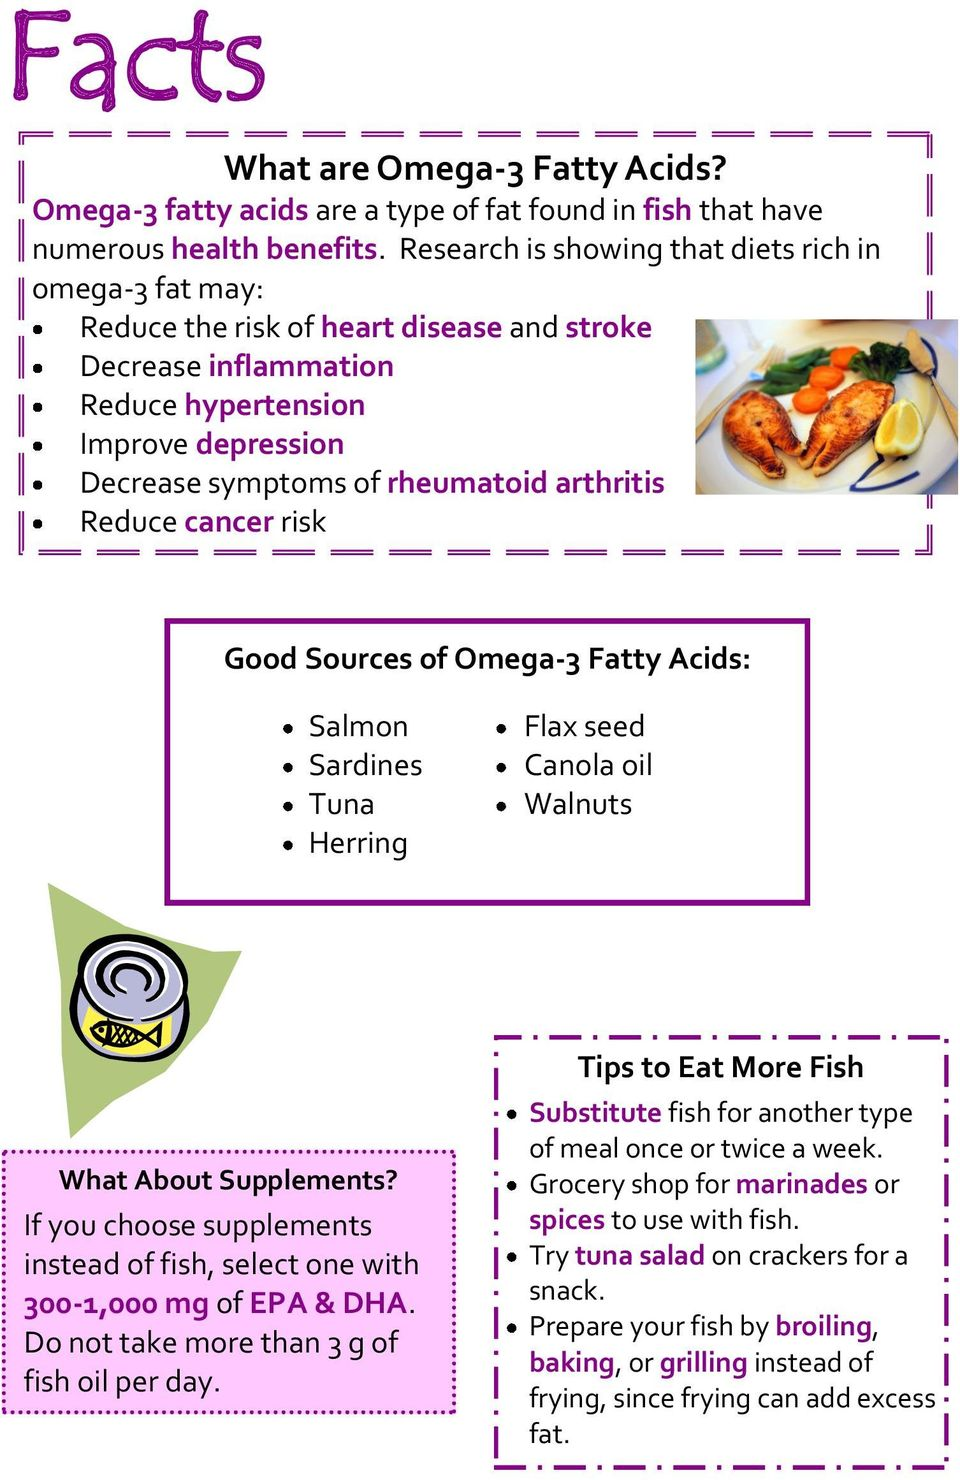 arthritis Reduce cancer risk Good Sources of Omega-3 Fatty Acids: Salmon Sardines Tuna Herring Flax seed Canola oil Walnuts What About Supplements?